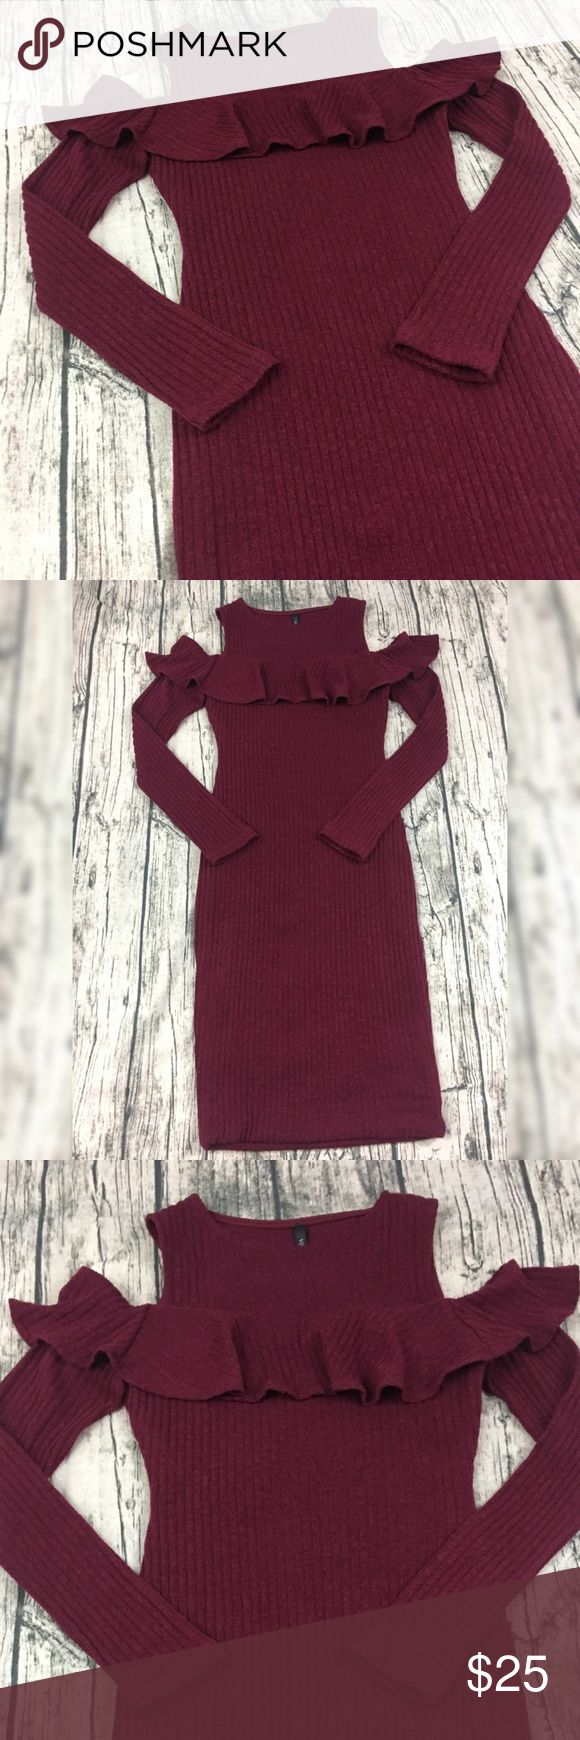 Cold Shoulder Ruffle Ribbed Sweater Dress Peel-a-boo shoulder fitted bodycon dress in Burgundy. Size small. Super adorable, soft material with stretch. Perfect for the Holidays or for a Christmas gift! Dresses Long Sleeve